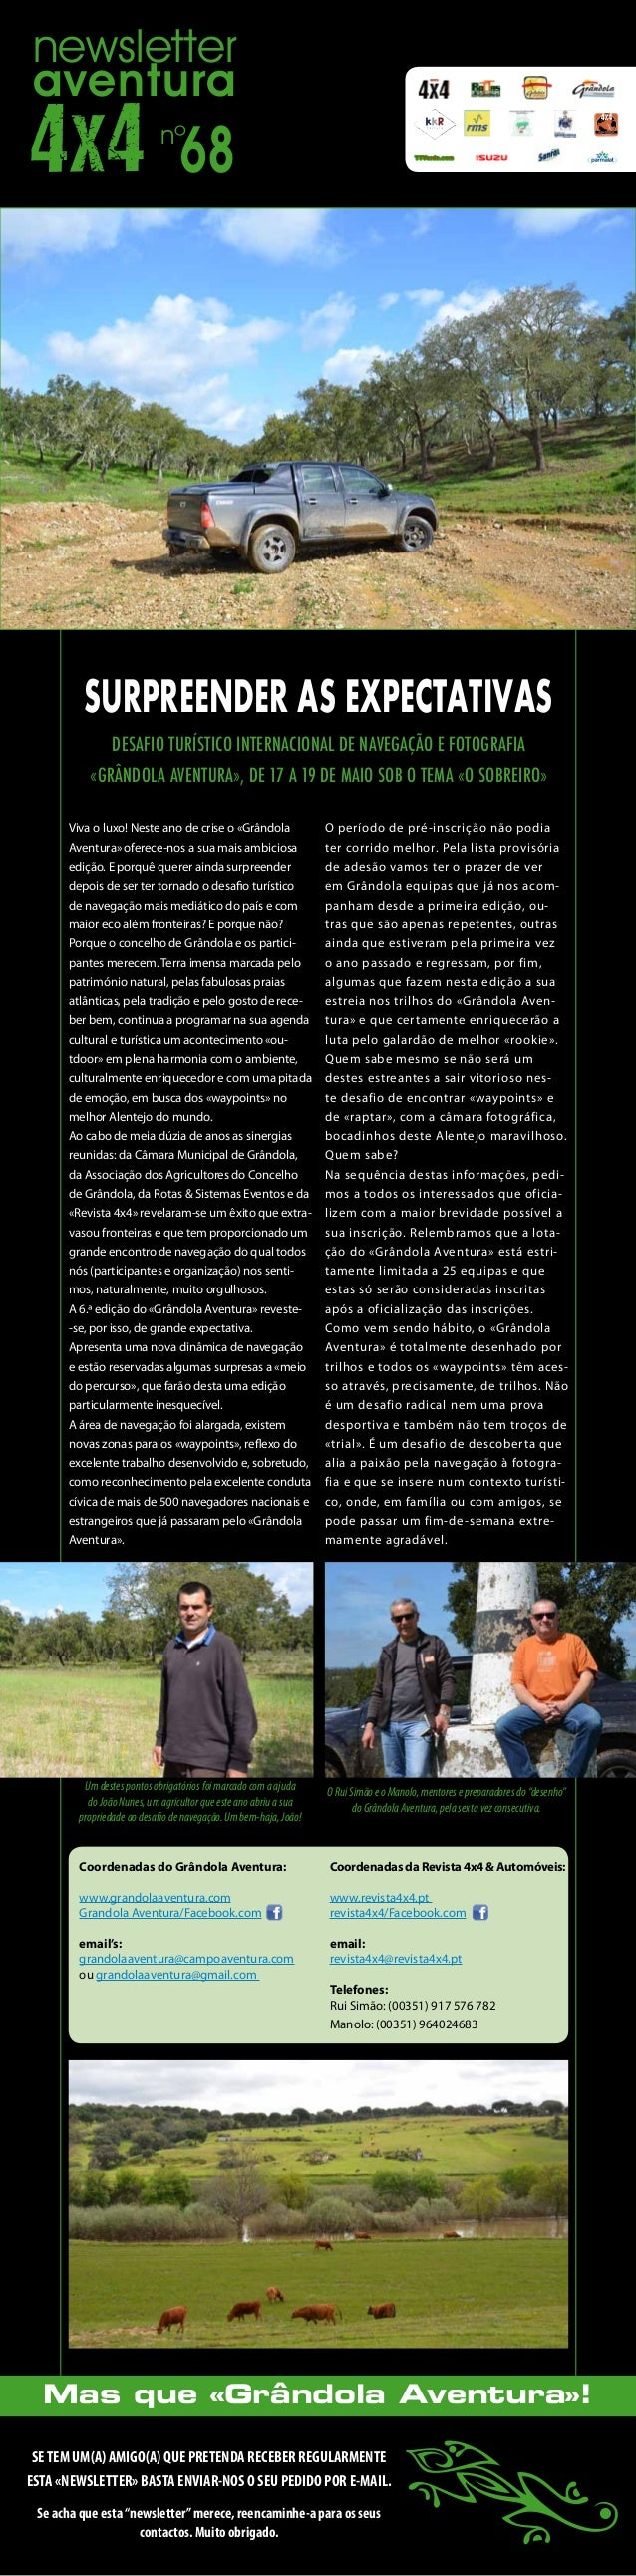 newsletteraventura                            nº                                68         SURPREENDER AS EXPECTATIVAS    ...